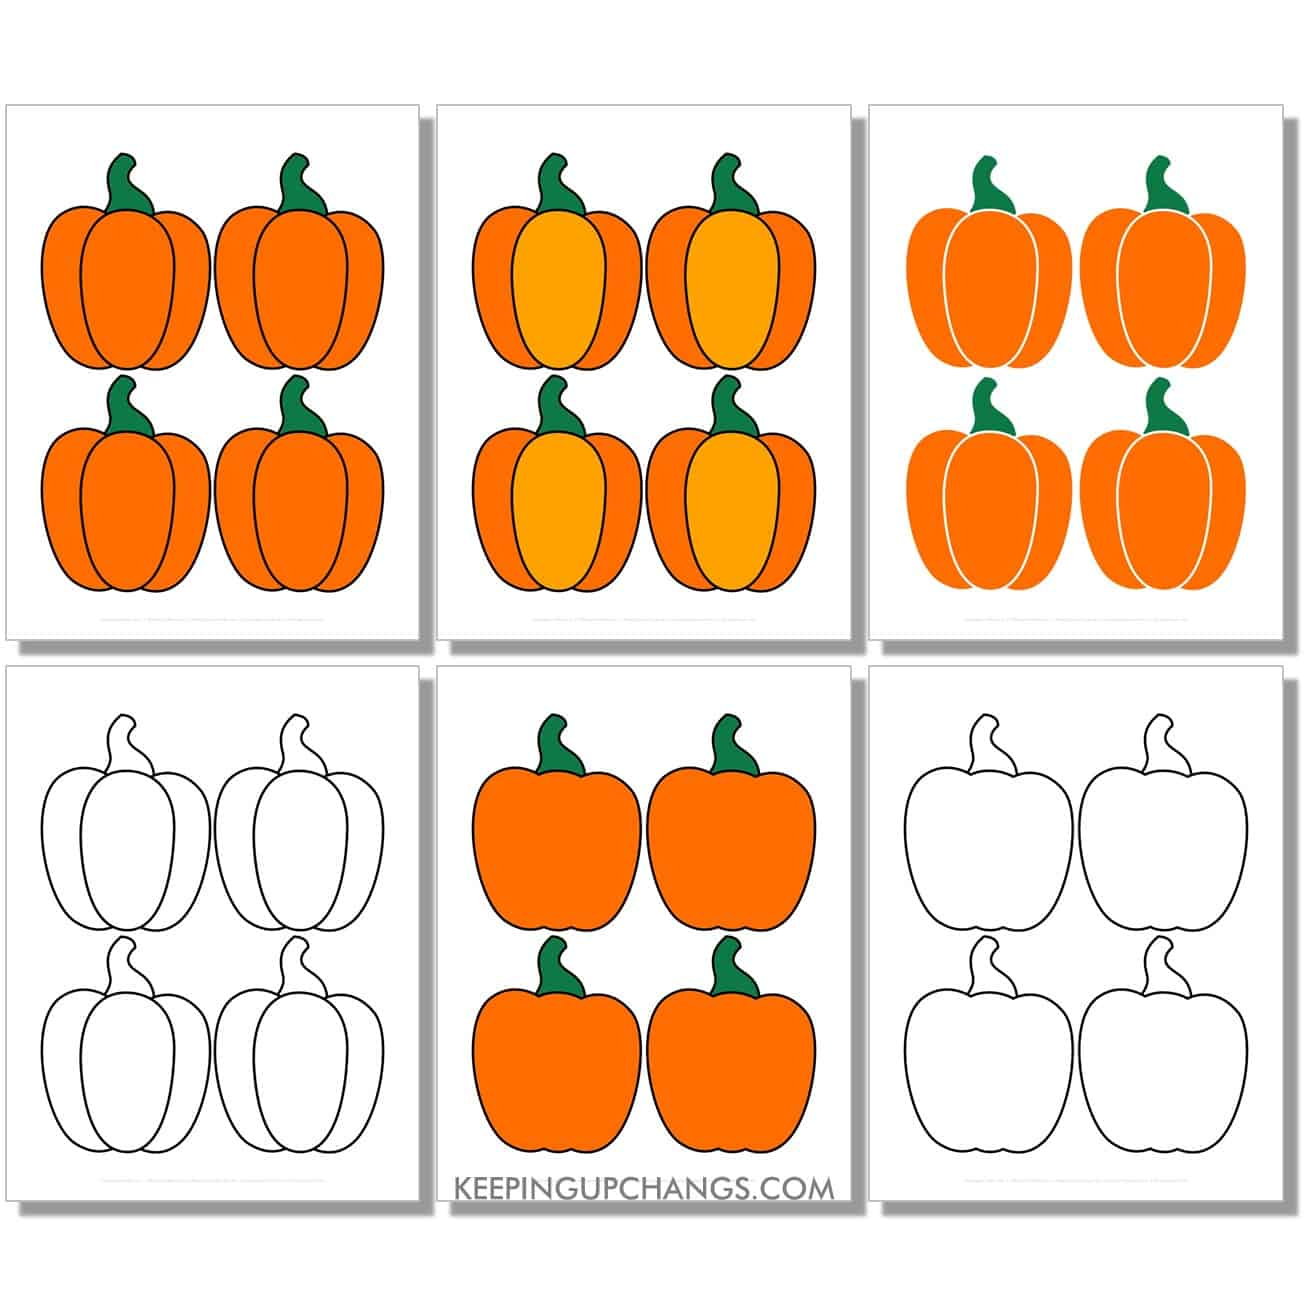 free small pumpkin in color, black and white, silhouette, 4 to a page.